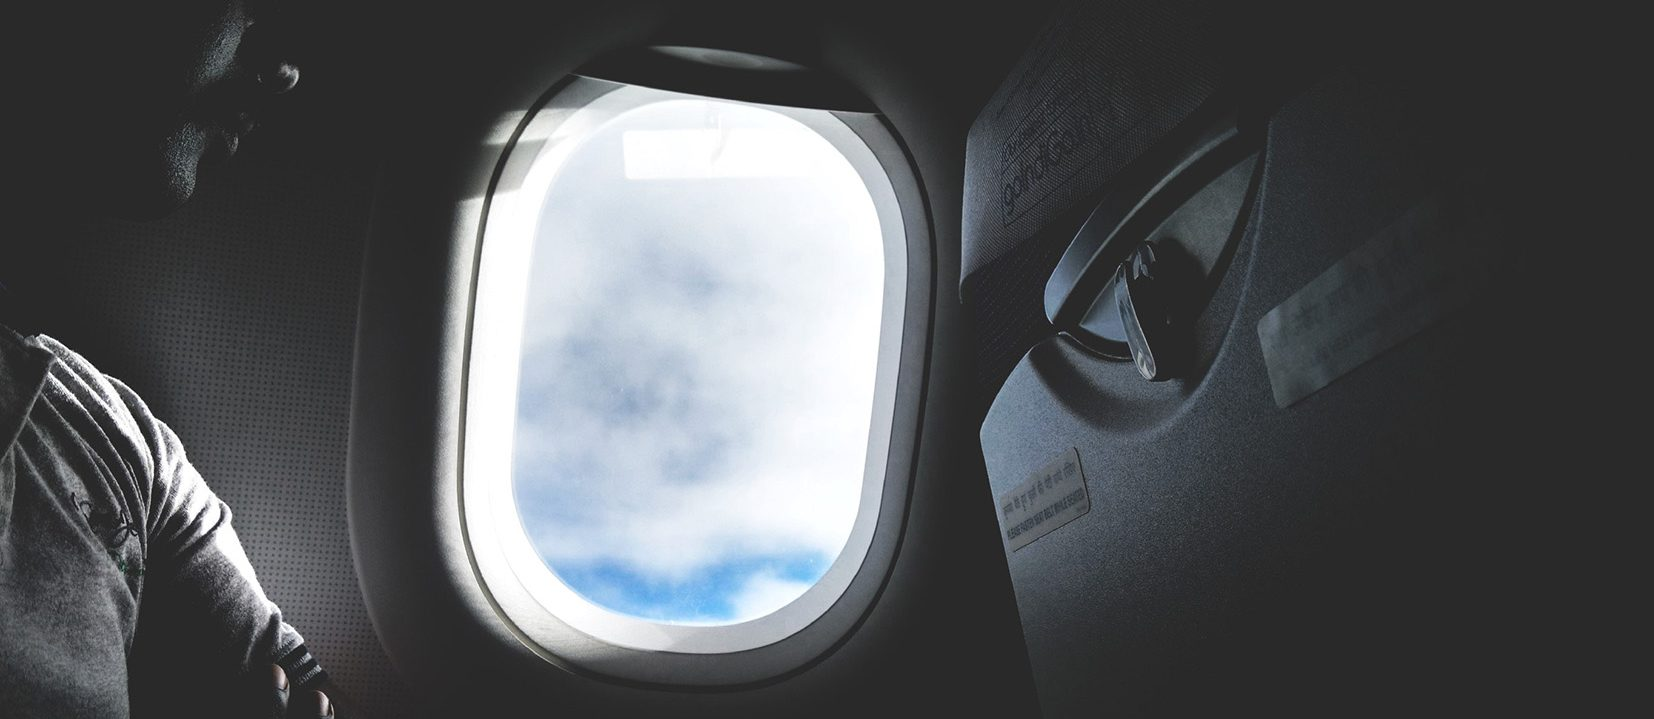 Airplane-window (Anugrah Lohiya) air passengers travel safely